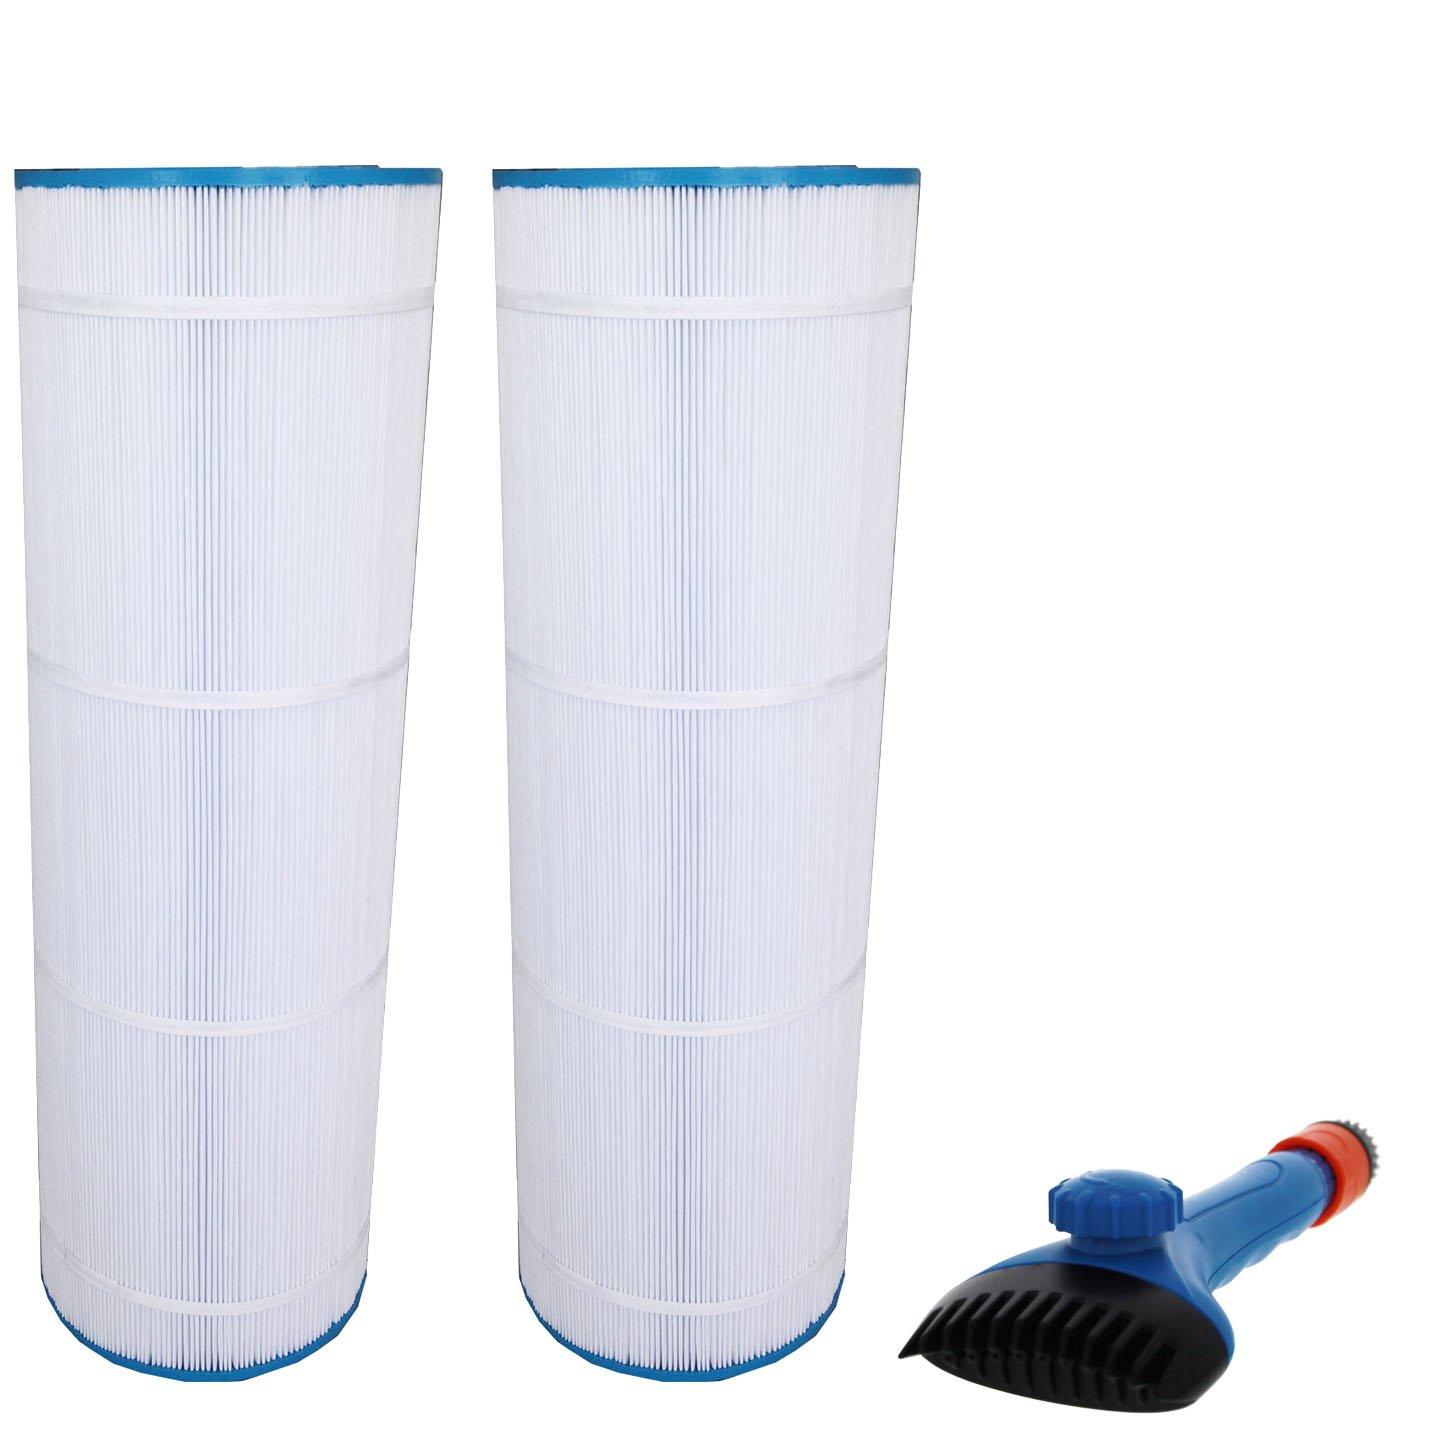 Pleatco PA175 Waterway Pro Clean 175 Comparable Replacement Pool Filter Cartridge 2-Pack Bundle with Tier1 Wand Brush Filter Cl C1900RE StarClear Plus C8417 Filbur FC-1294 Tier1 Hayward CX1750RE